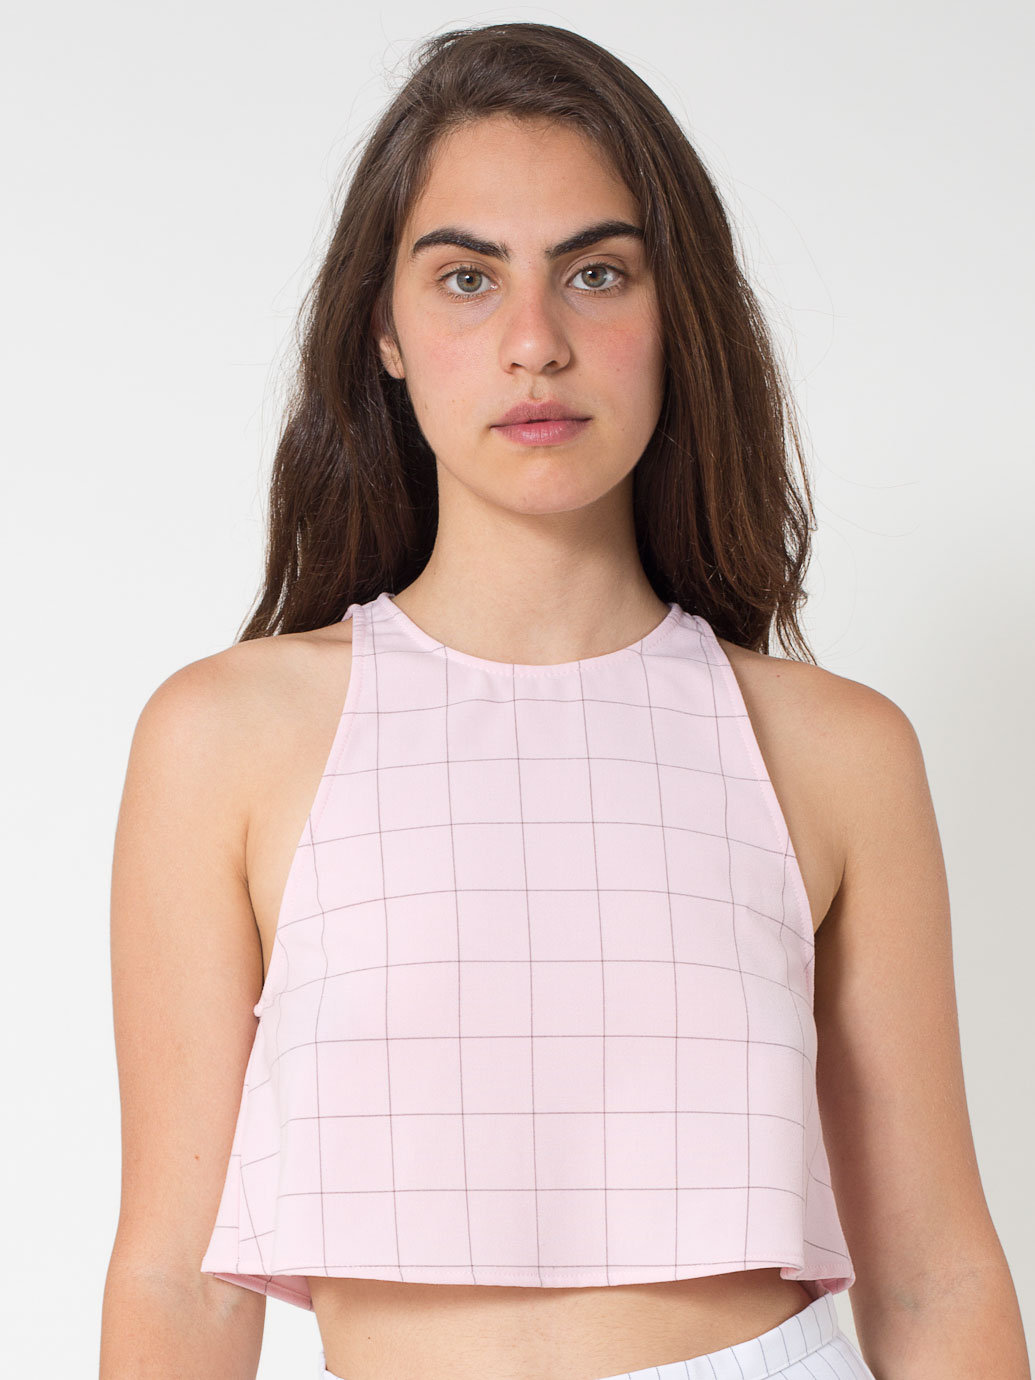 The Grid Print Lulu Crop | American Apparel